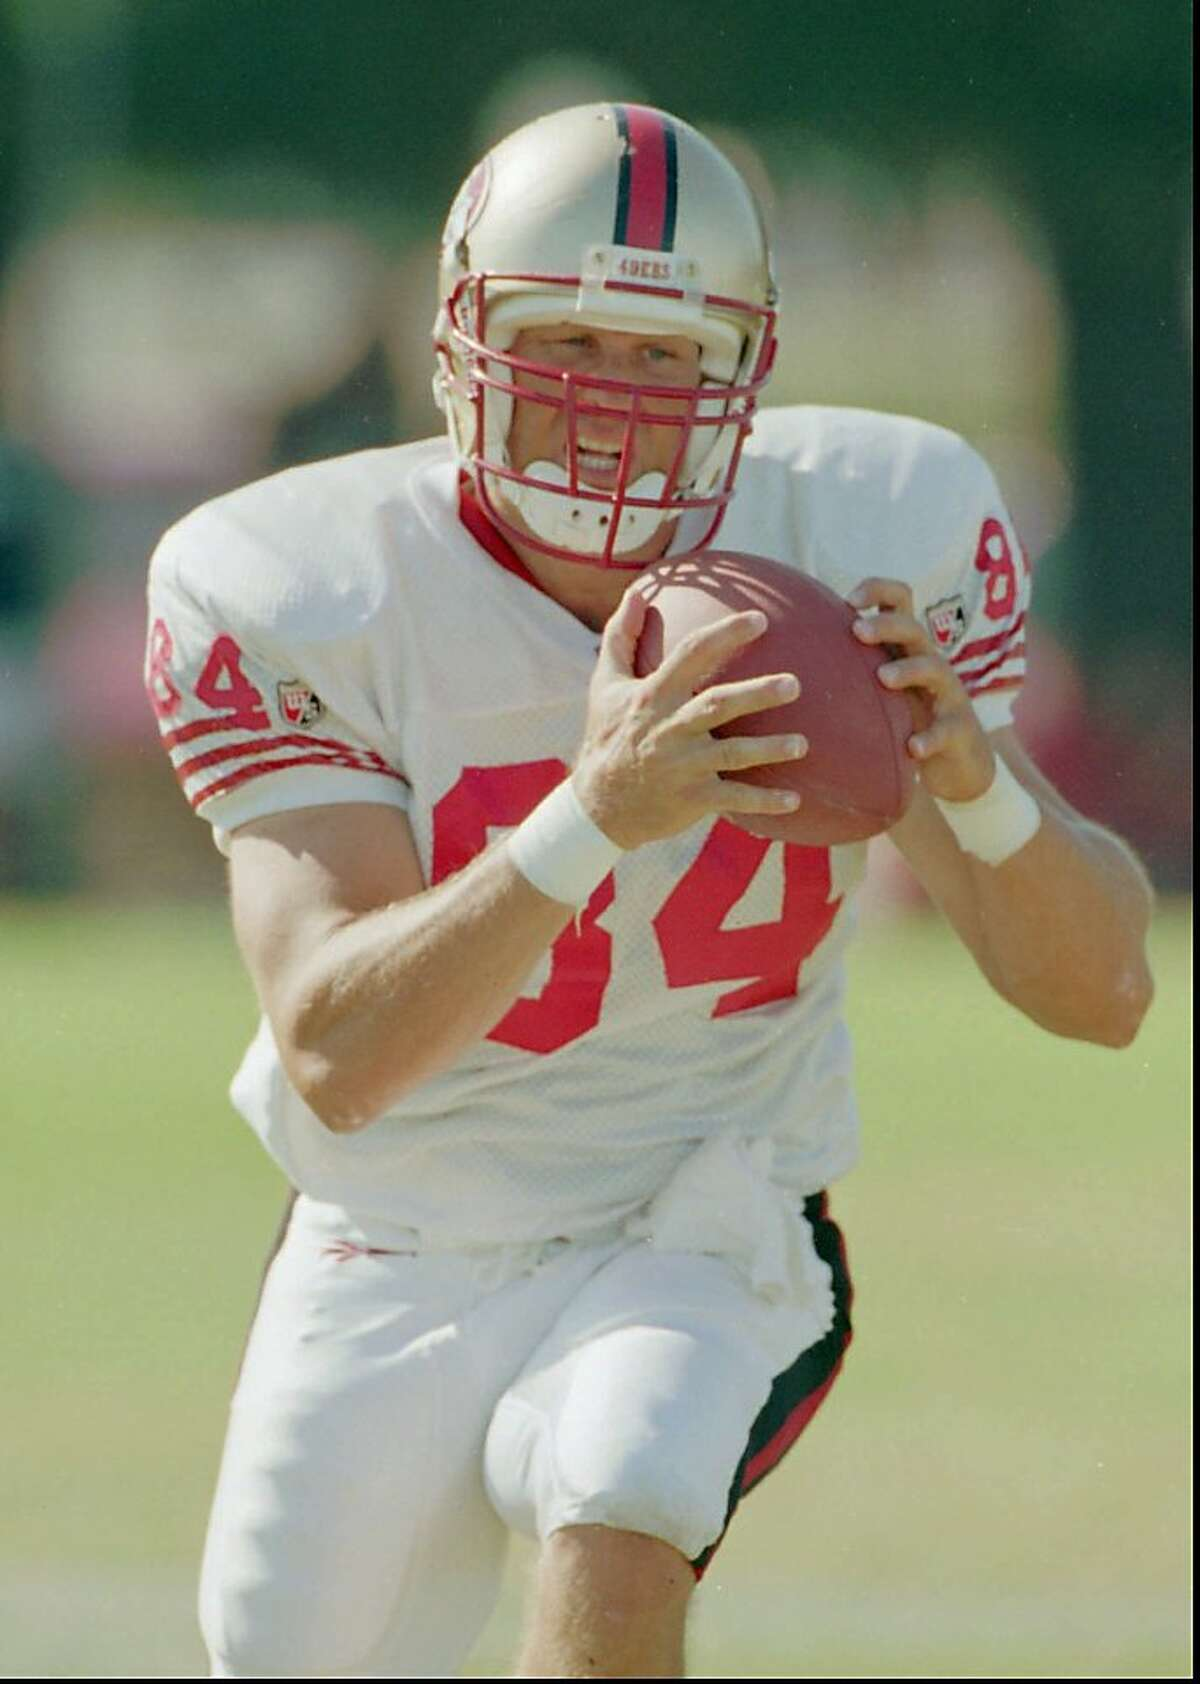 San Francisco 49ers tight end Brent Jones pulls in a pass during workouts at Sierra College in Rocklin, Calif., Tuesday, Aug. 5, 1997. (AP Photo/Bob Galbraith) Ran on: 09-30-2011 Former 49ers tight end Brent Jones pushed Ertz hard at Monte Vista High in Danville. Ran on: 09-30-2011 Former 49ers tight end Brent Jones pushed Ertz hard at Monte Vista High in Danville.